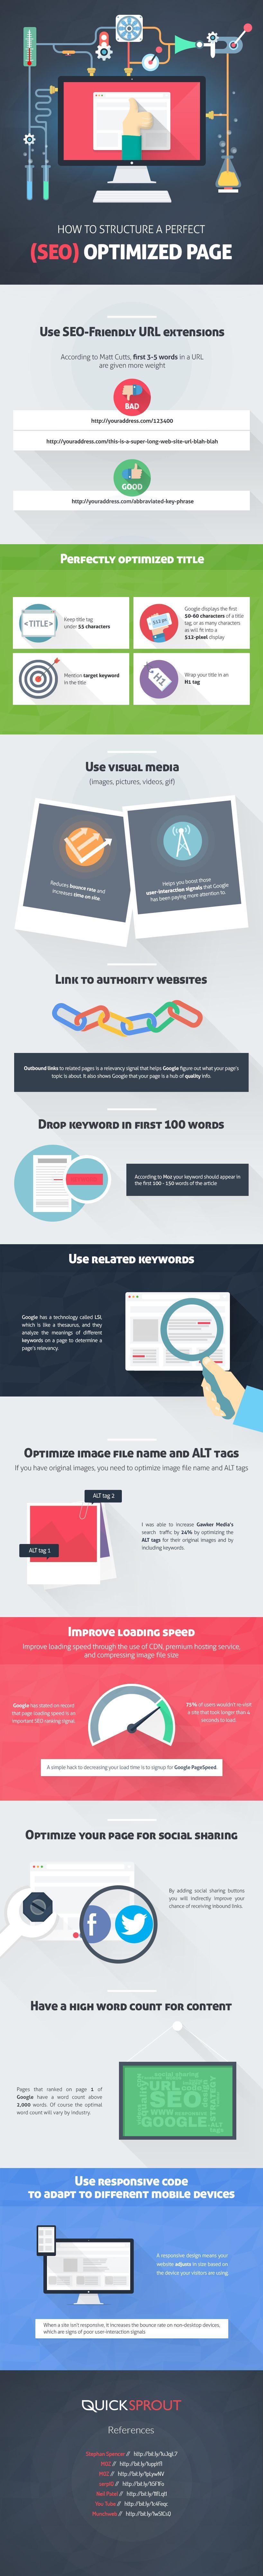 On Page Seo 11 Techniques That Just Work In 2019 Free Checklist Seo Marketing Infographic Marketing Seo Techniques